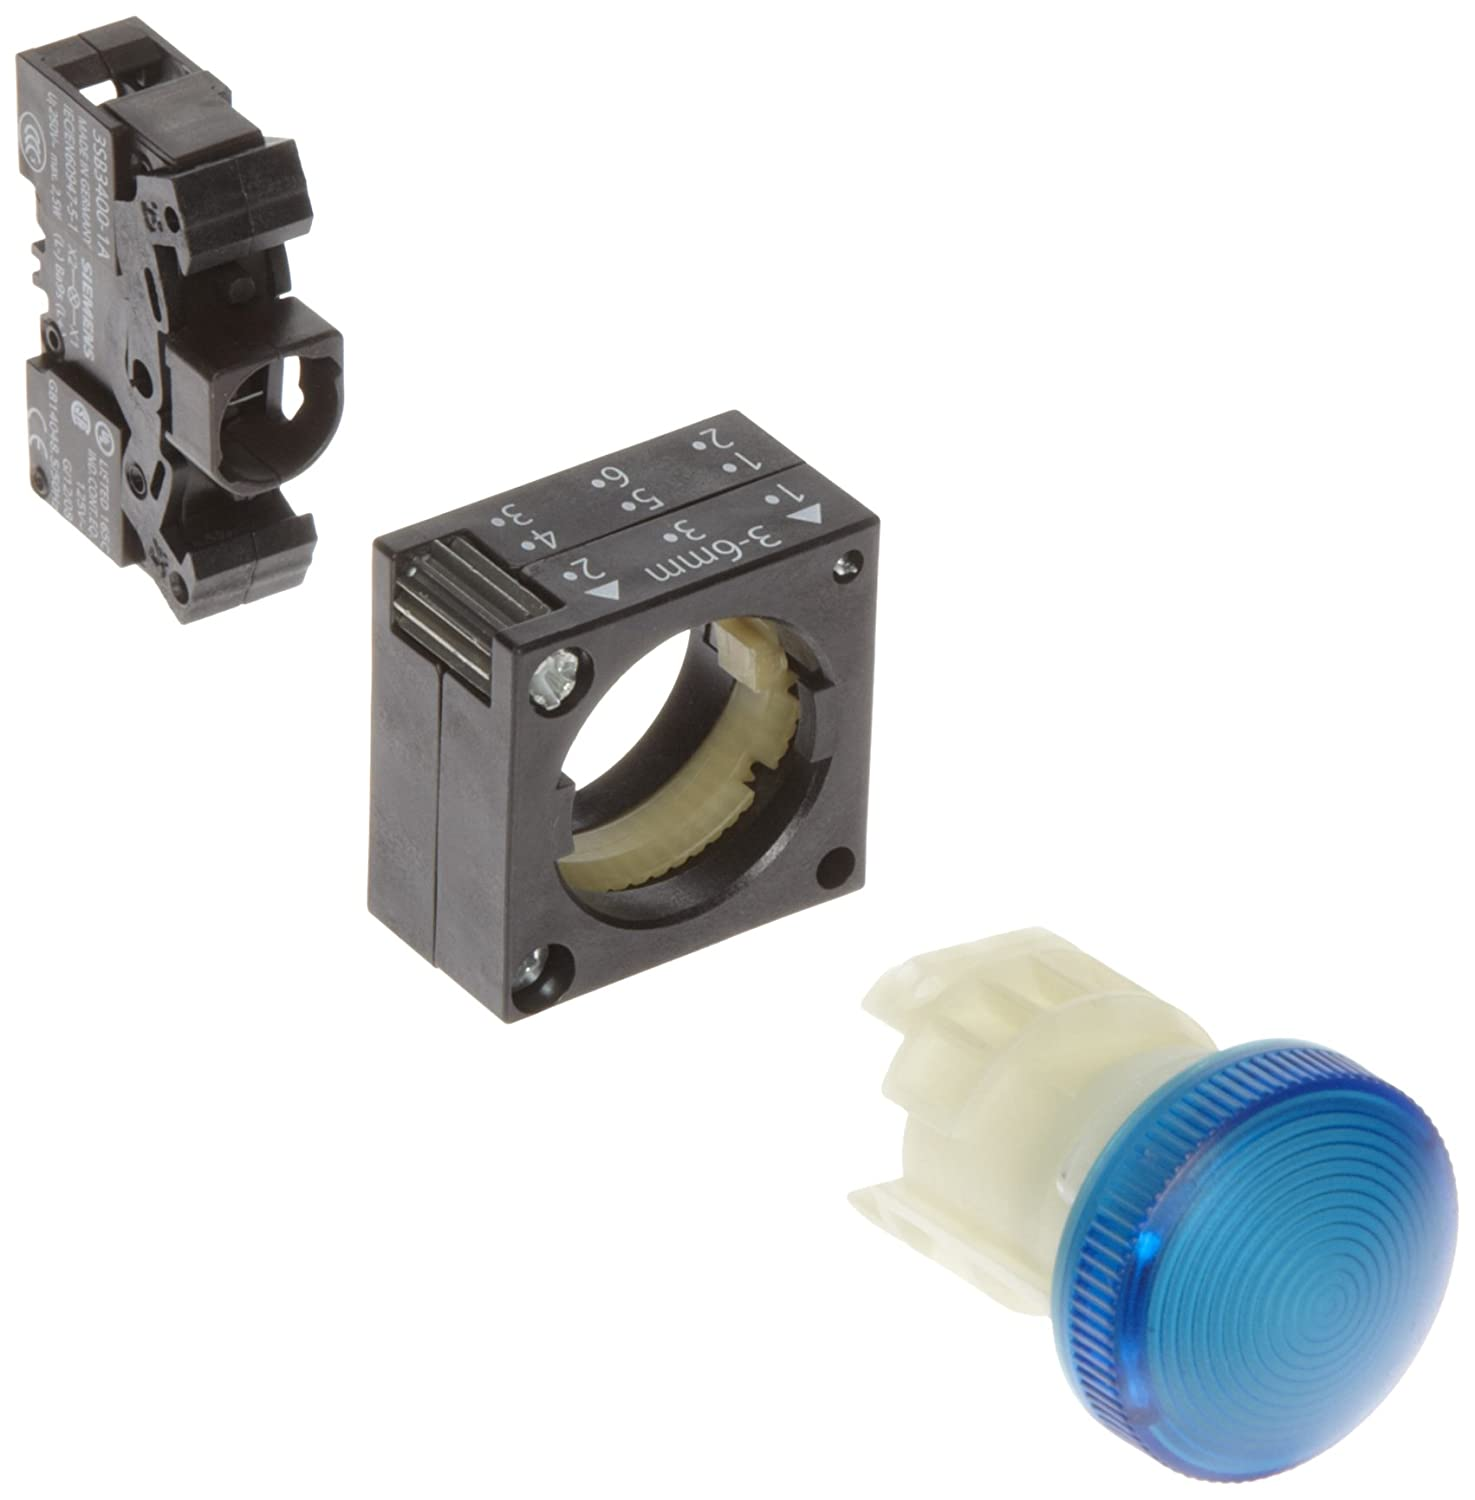 Siemens 3SB32 04-6BA50 Indicator Light, Concentric Rings In Lens, BA 9s Lamp Holder, Blue siemens lc 91 ba 582 ix